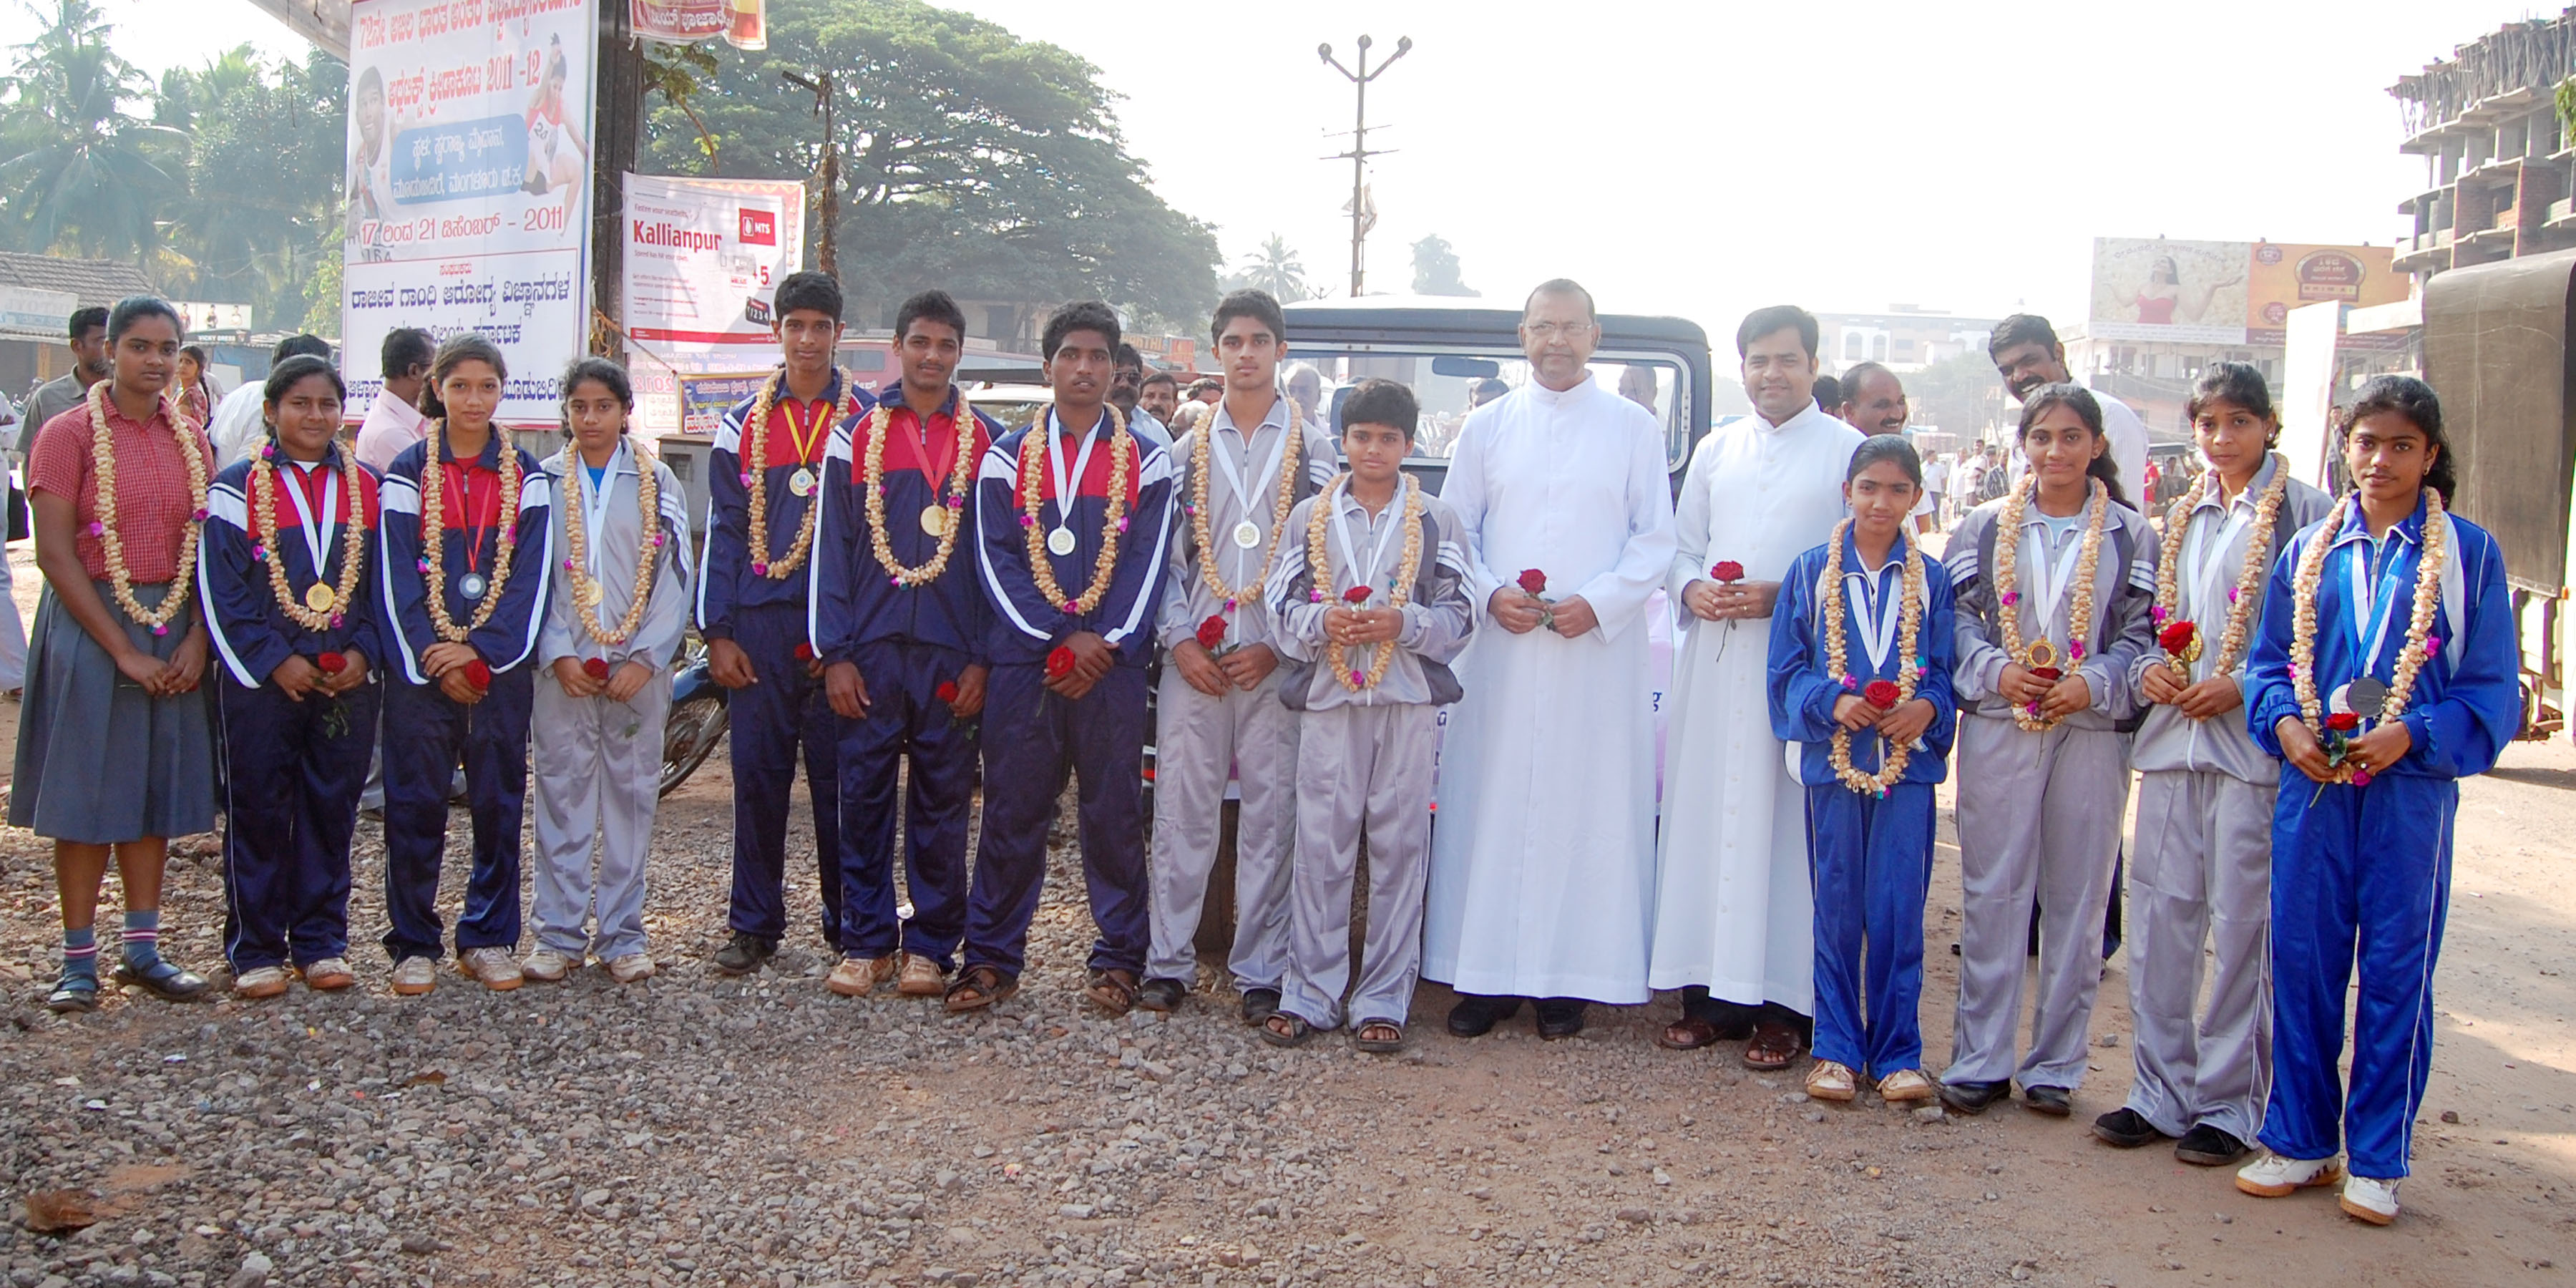 Students of Milagres English School Selected for National Level Sports - Warmly welcome at Santhekatte